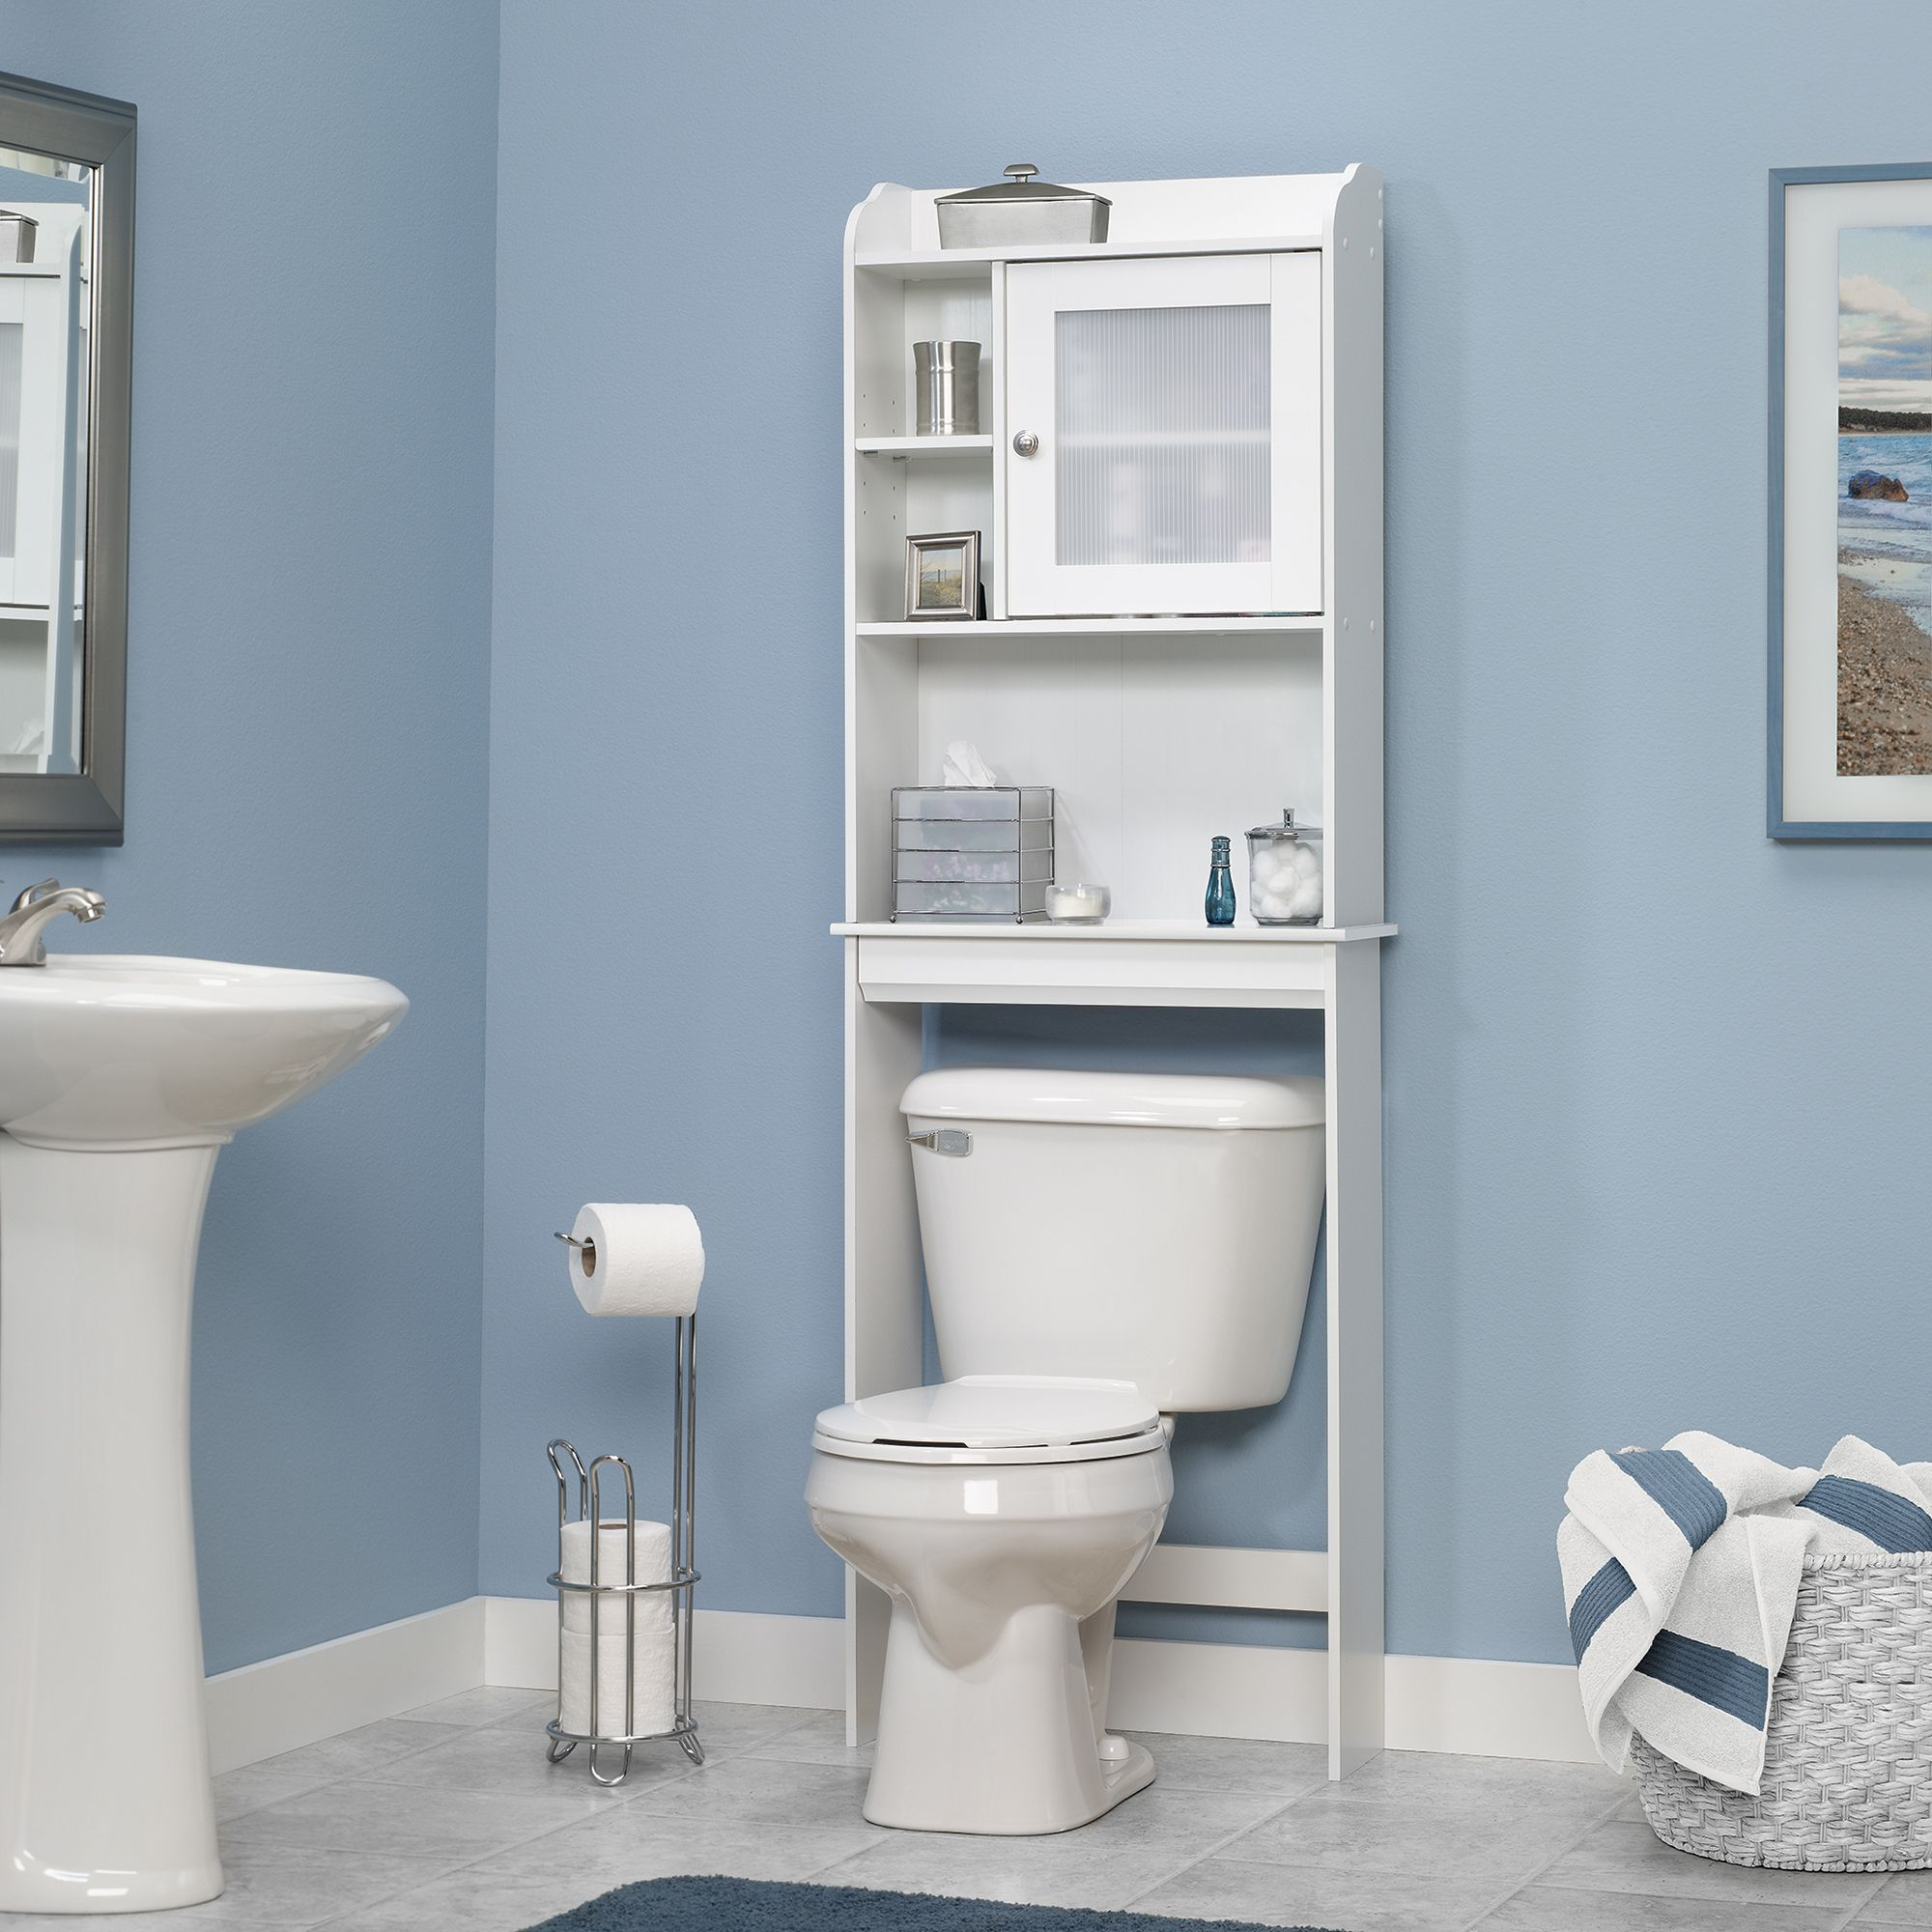 Functional Space Saver Furniture With Bathroom Etagere: Amazing Bathroom  Etagere And Toilet With Pedestal Sink